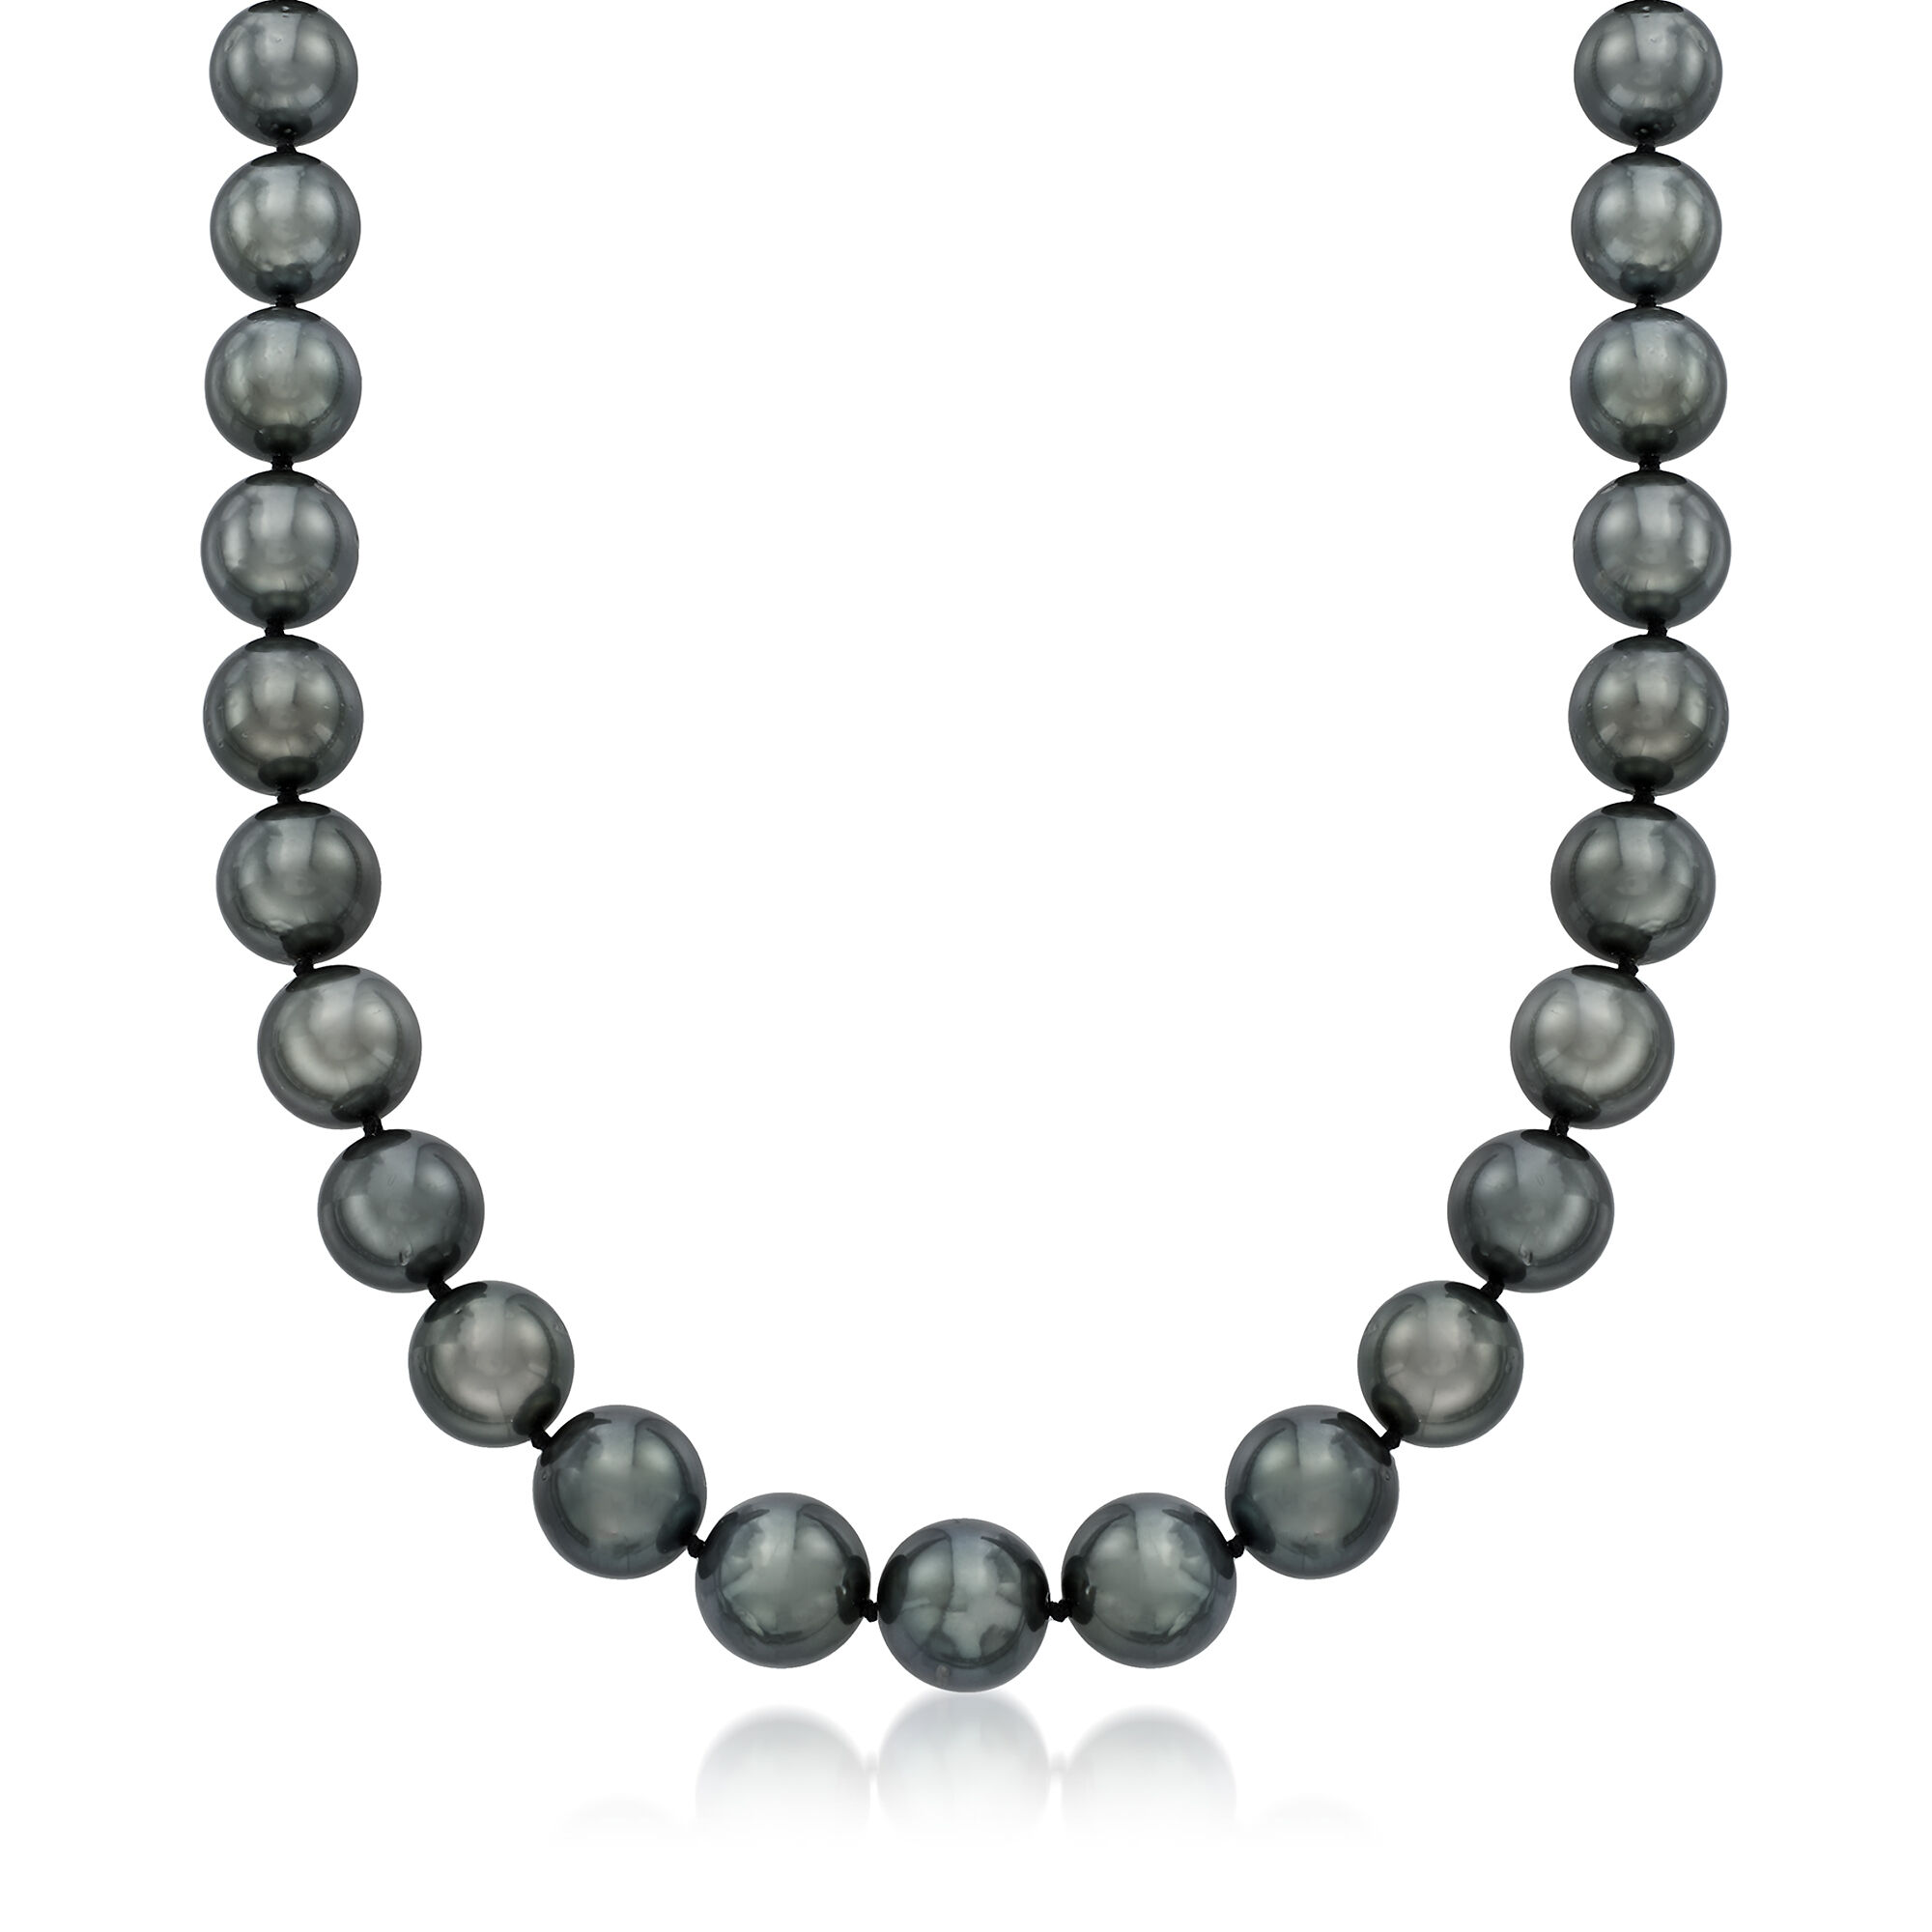 10-12mm baroque tahitian black green pearl necklace 18 inches 14k